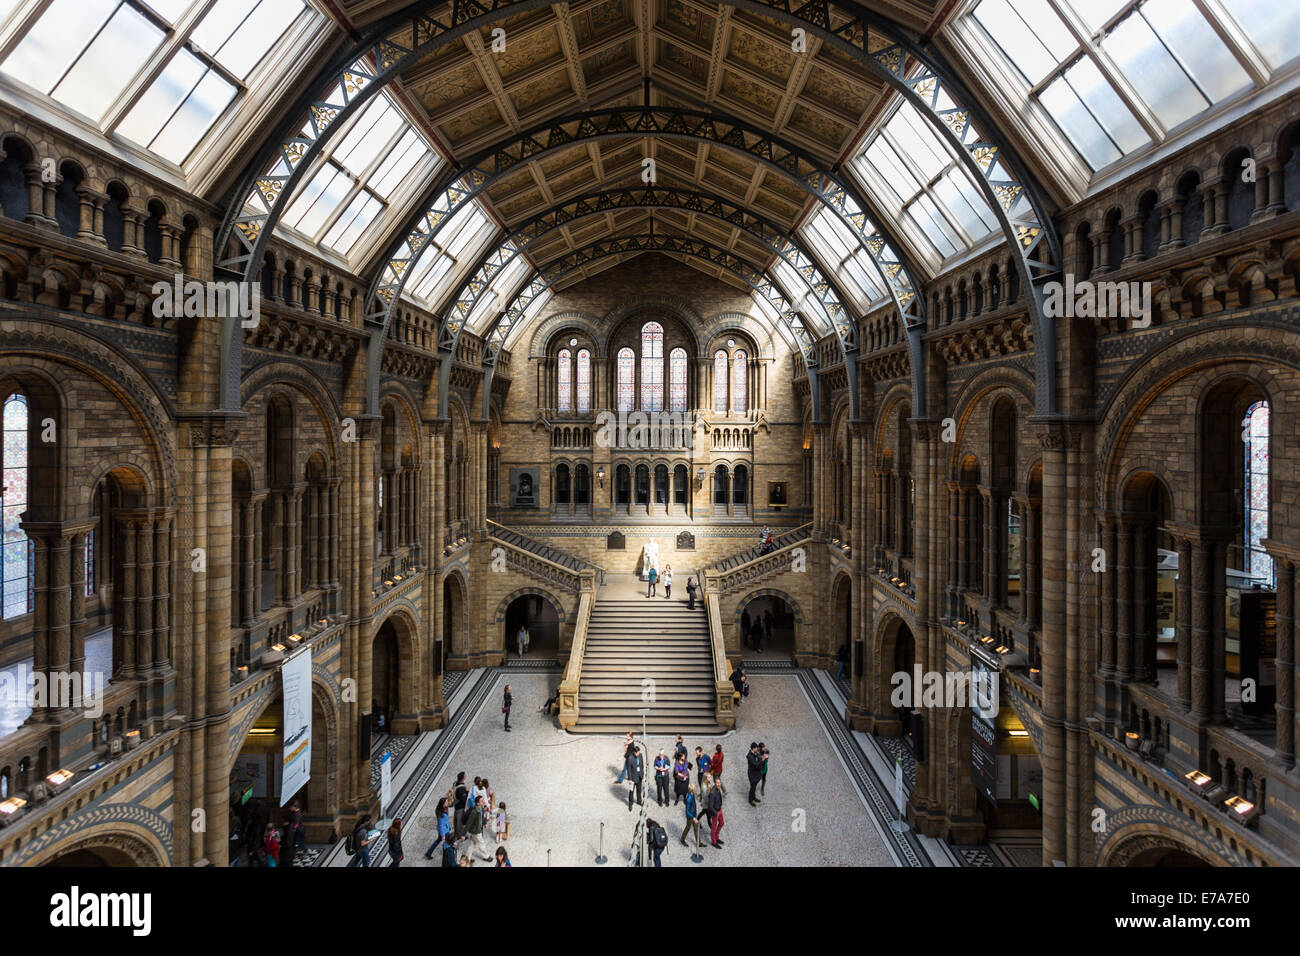 Interior of Natural History Museum in London, England, United Kingdom Stock Photo